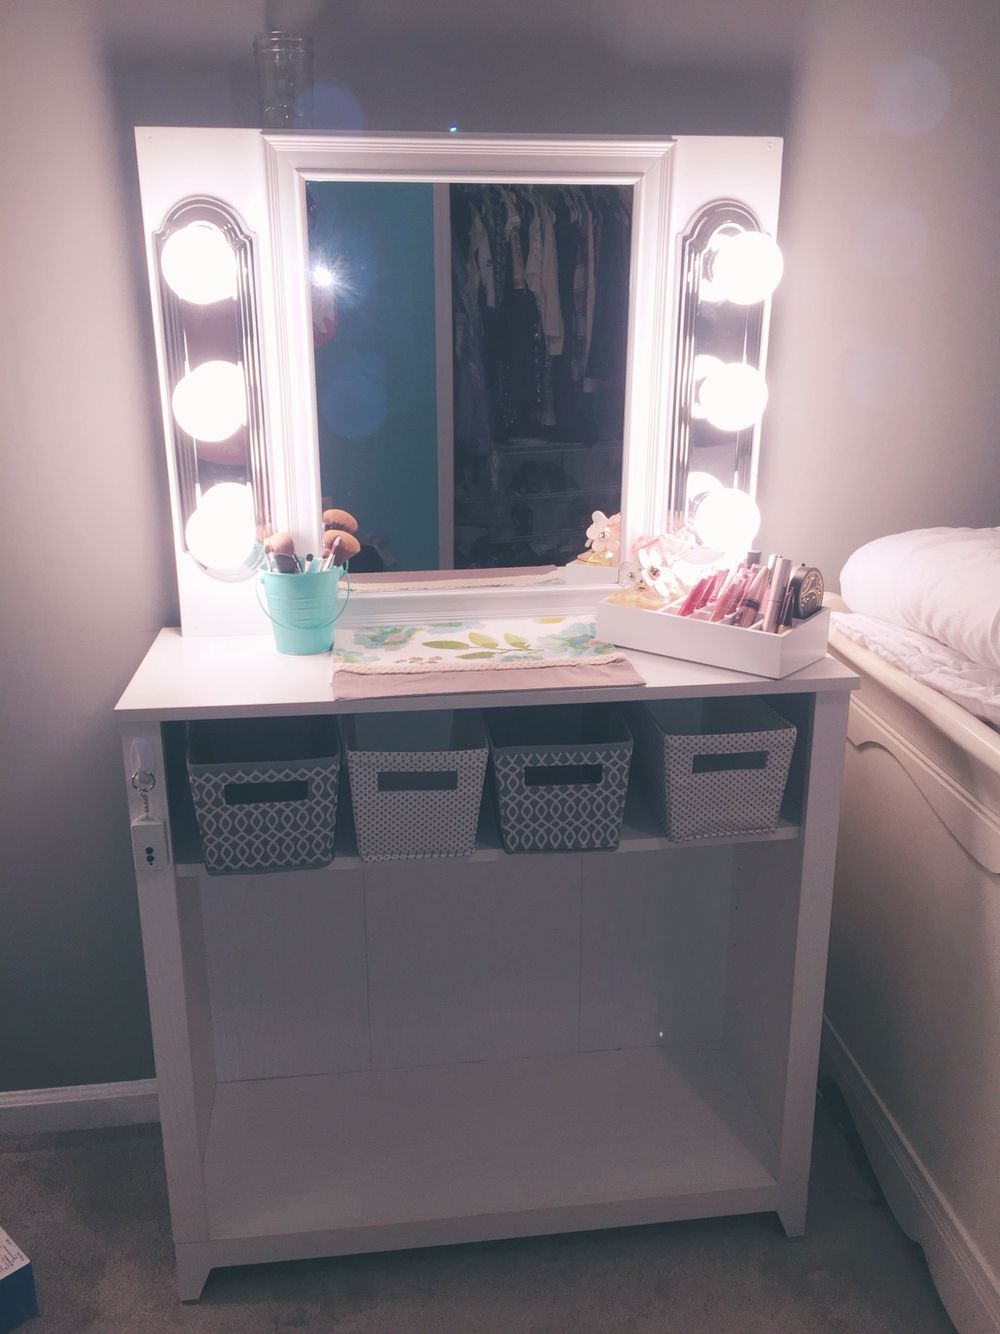 Diy Vanity Mirror 24x48 Plywood And 4 In Panel Wood To Create